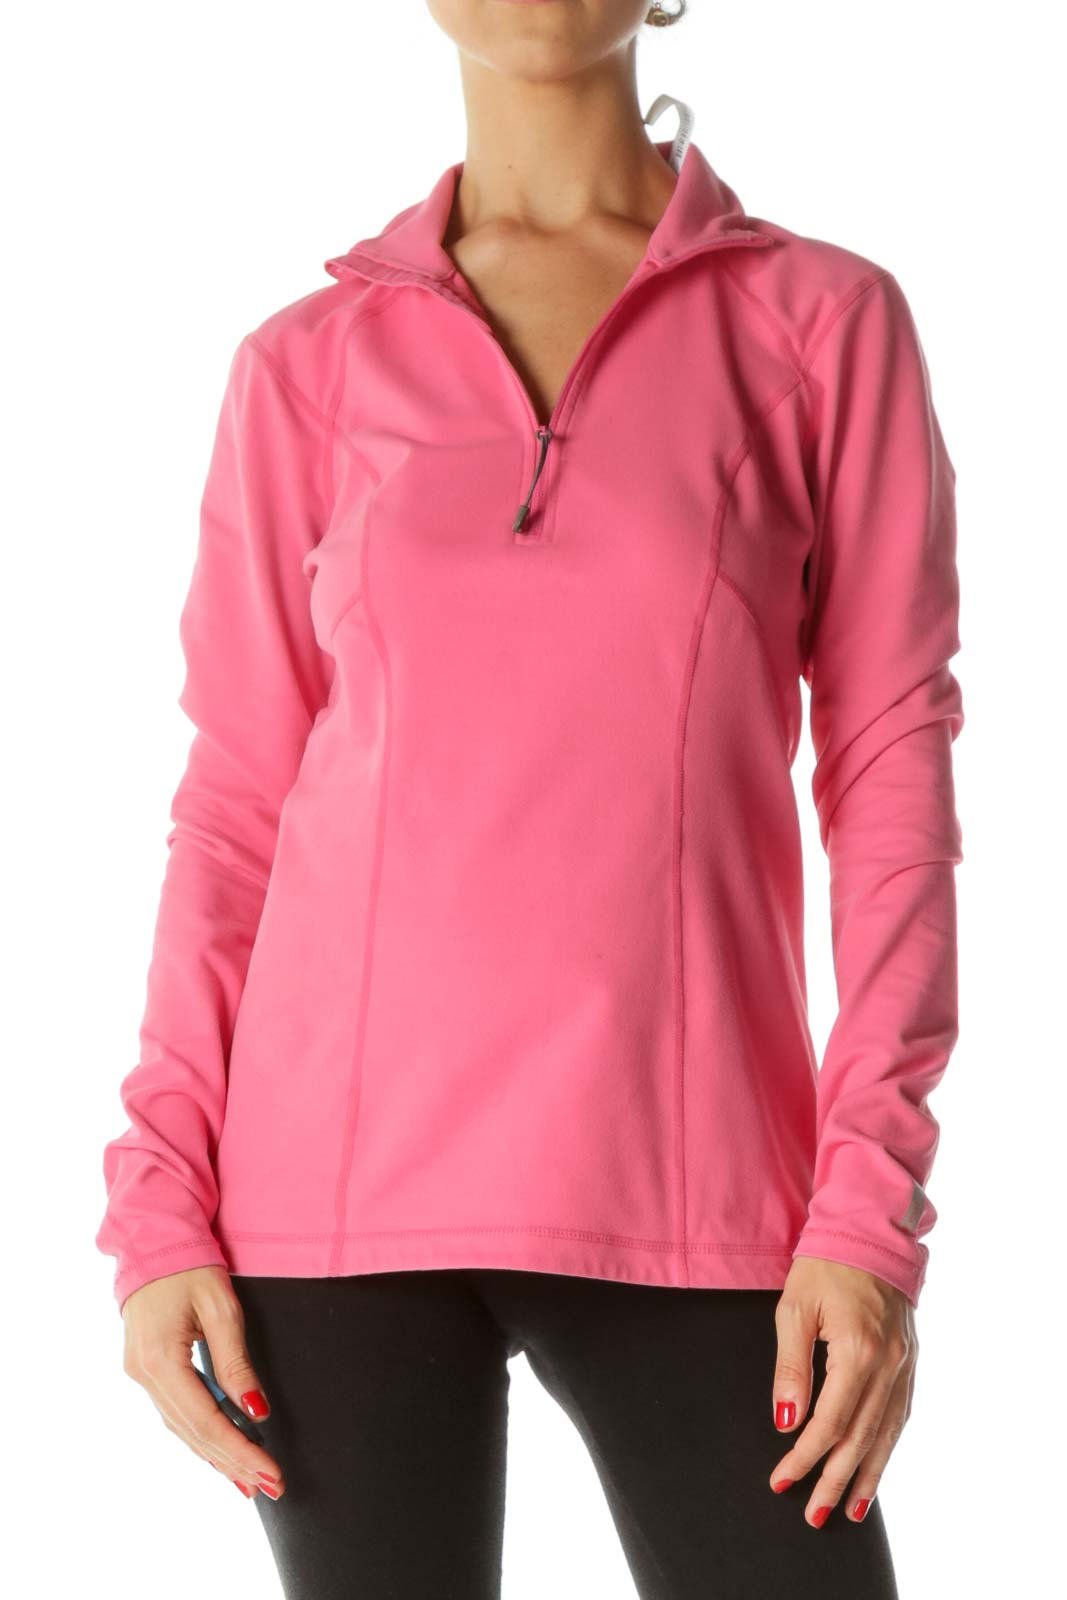 Pink Zippered Sport Long Sleeves Top  Front